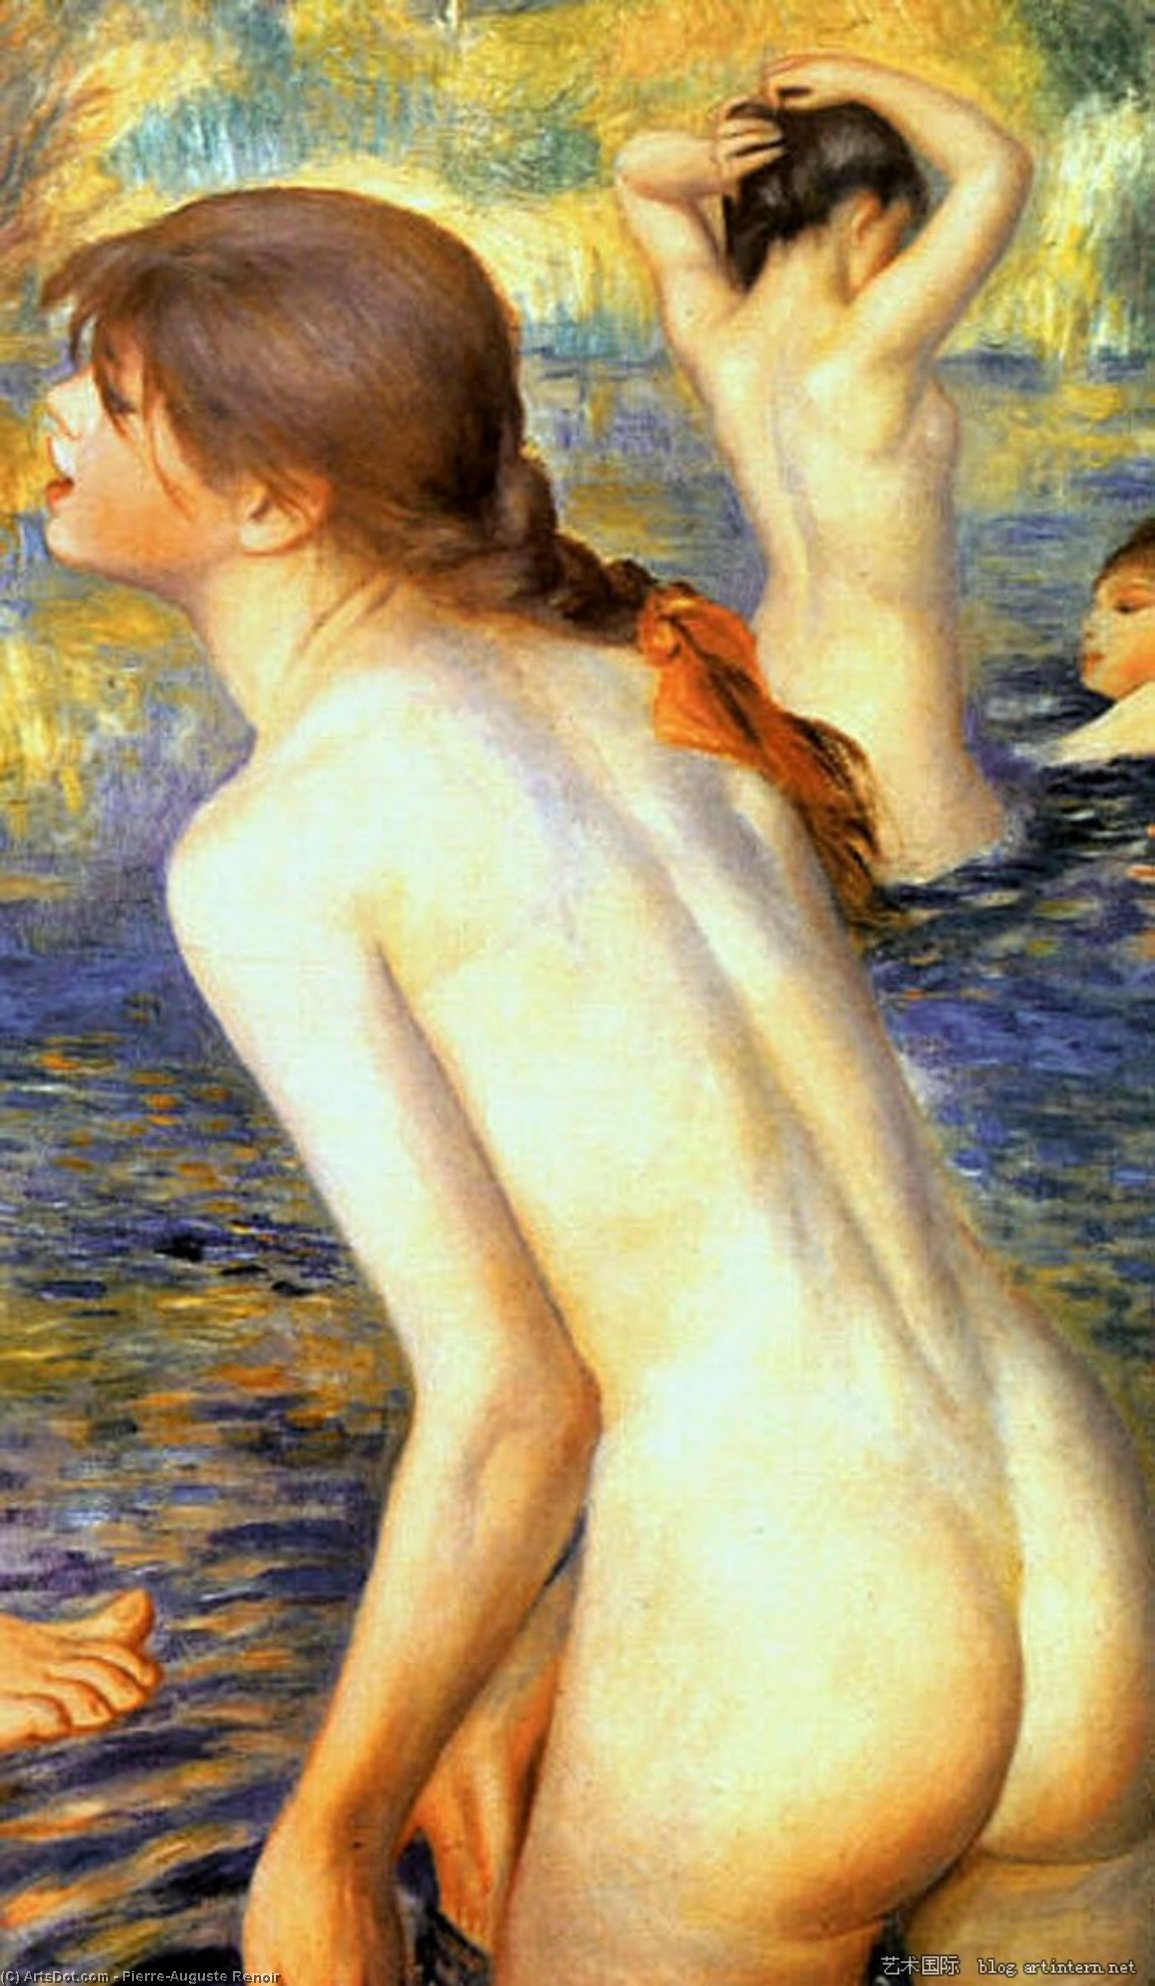 renoir large bathers Pierre auguste renoir the large bathers painting for sale, this painting is available as 100% handmade reproduction shop for pierre auguste renoir the large bathers painting and frame at a discount of 50% off.